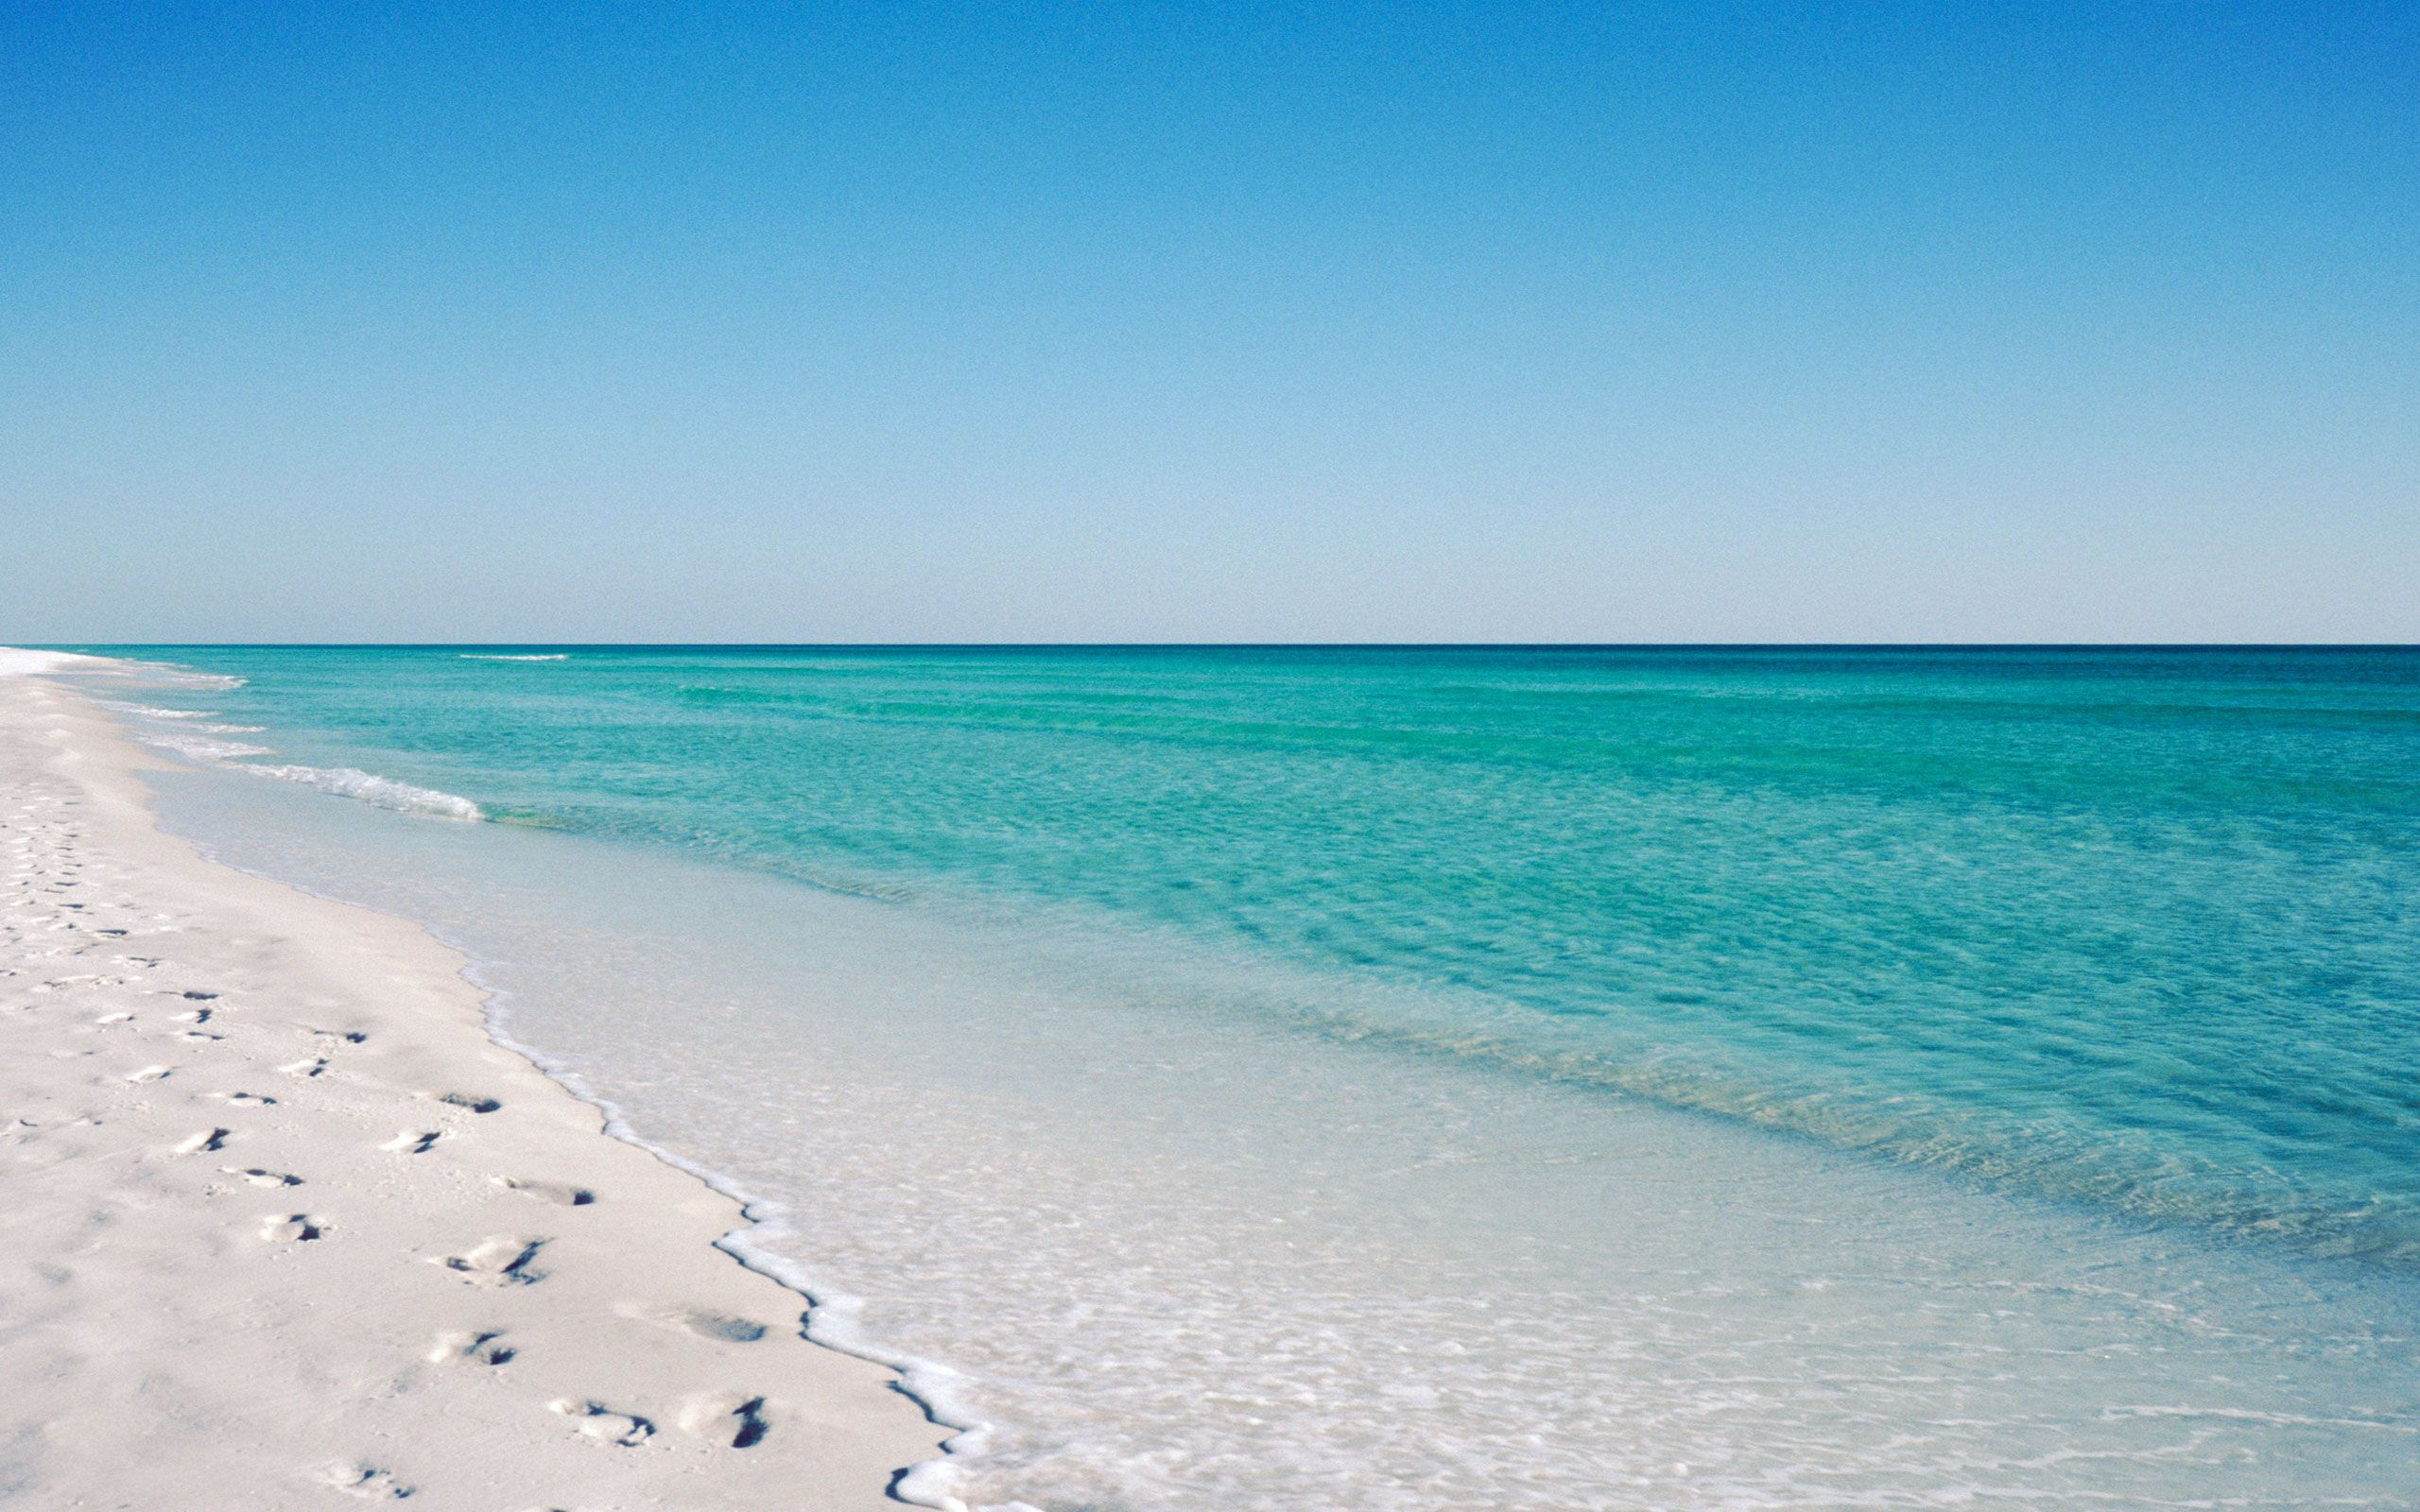 Sanibel Island Fl I Have Been Here Before But Went